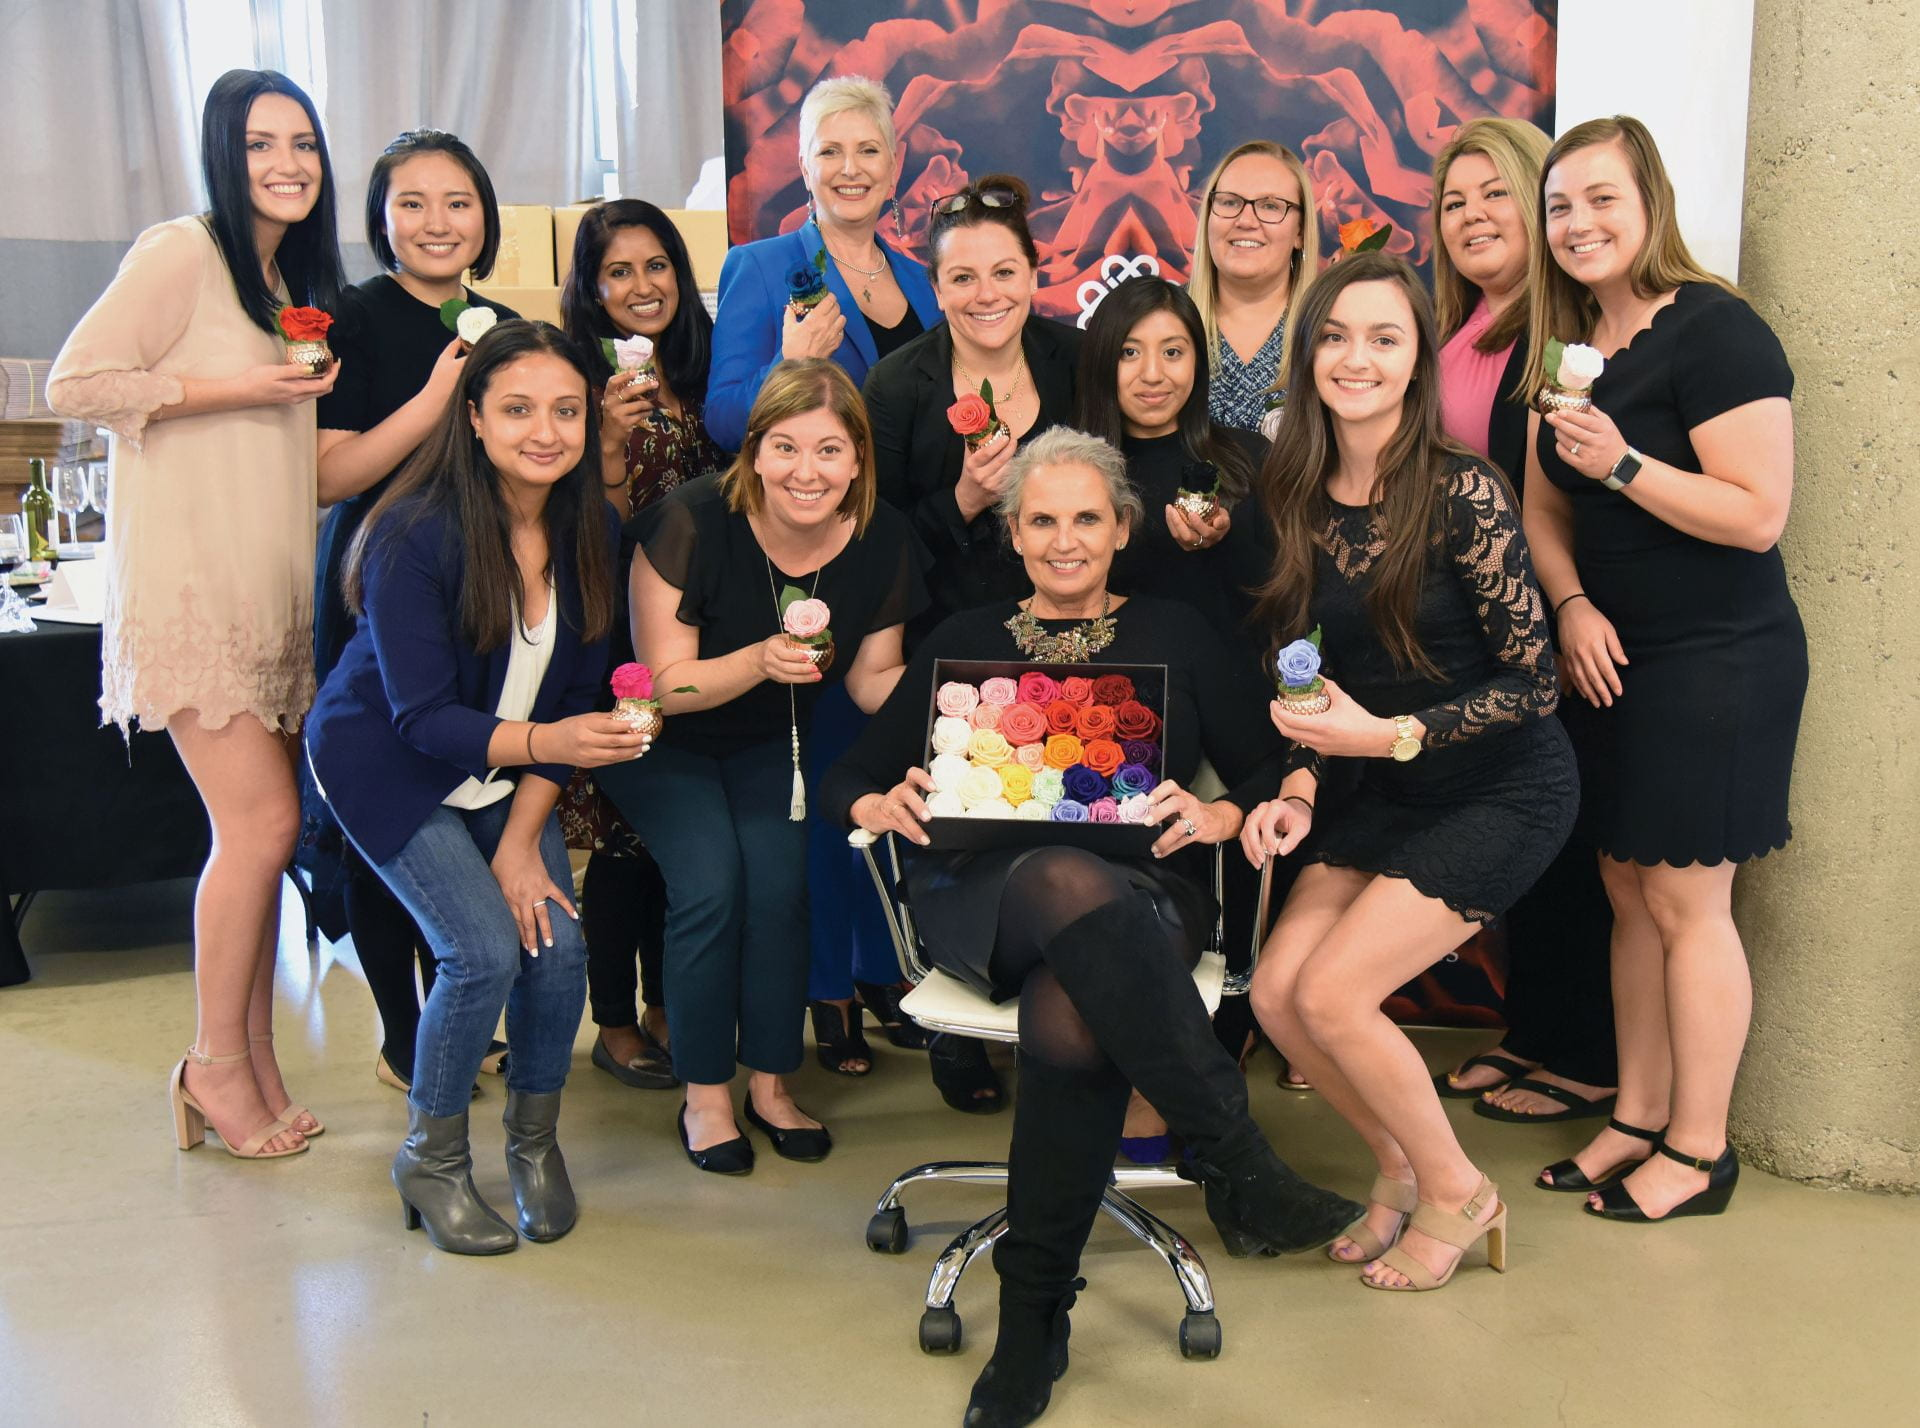 Shelley Rosen (seated in center) with DePaul students celebrating their completion of the Women Entrepreneurs special topics course.